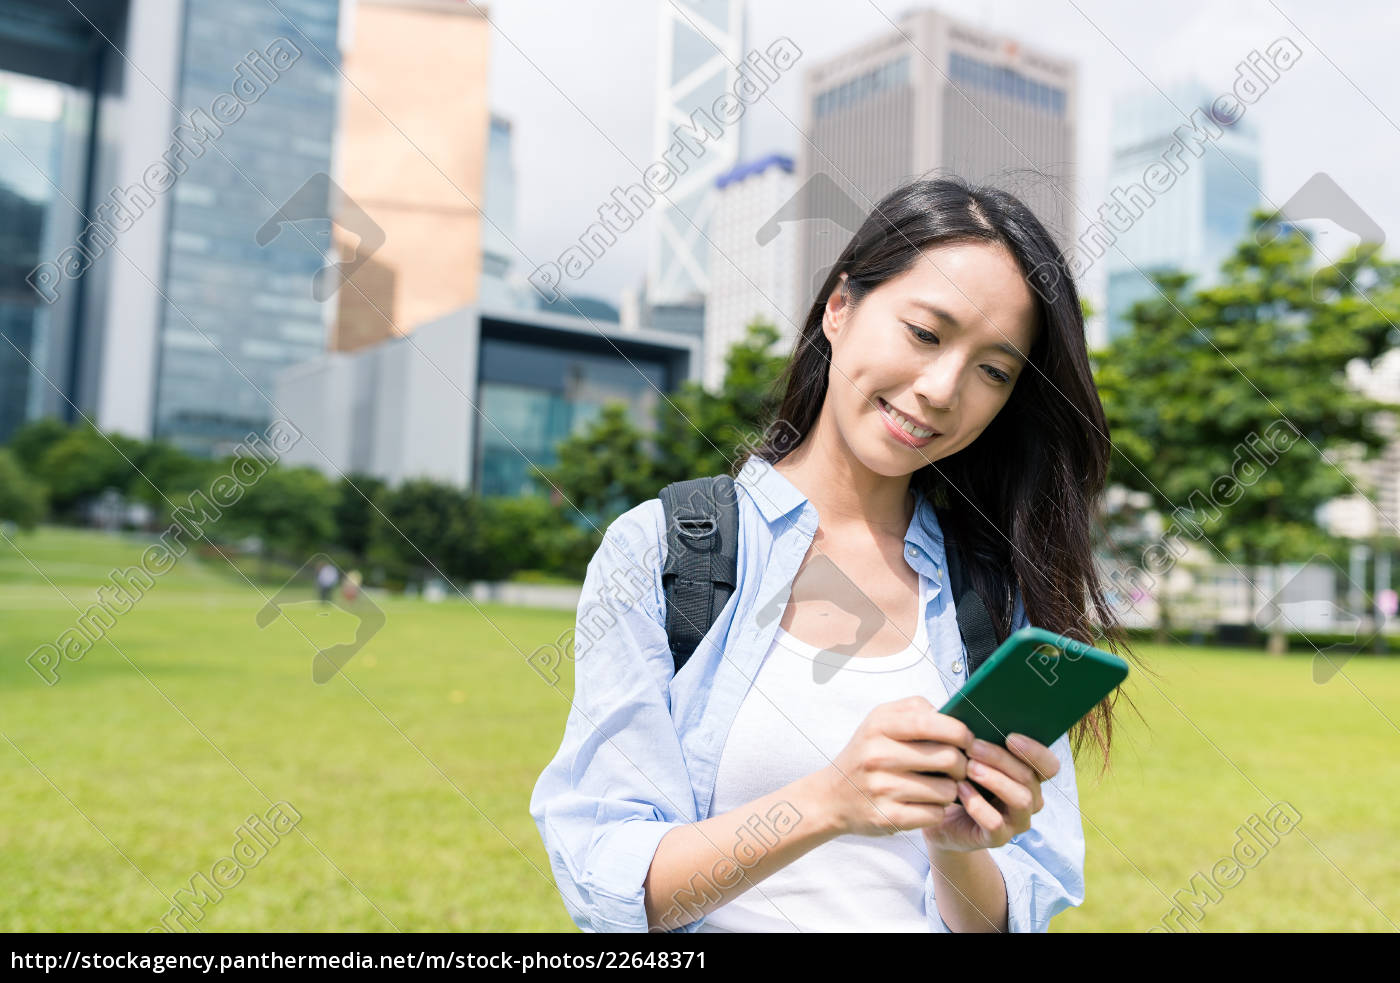 woman, use, of, cellphone - 22648371